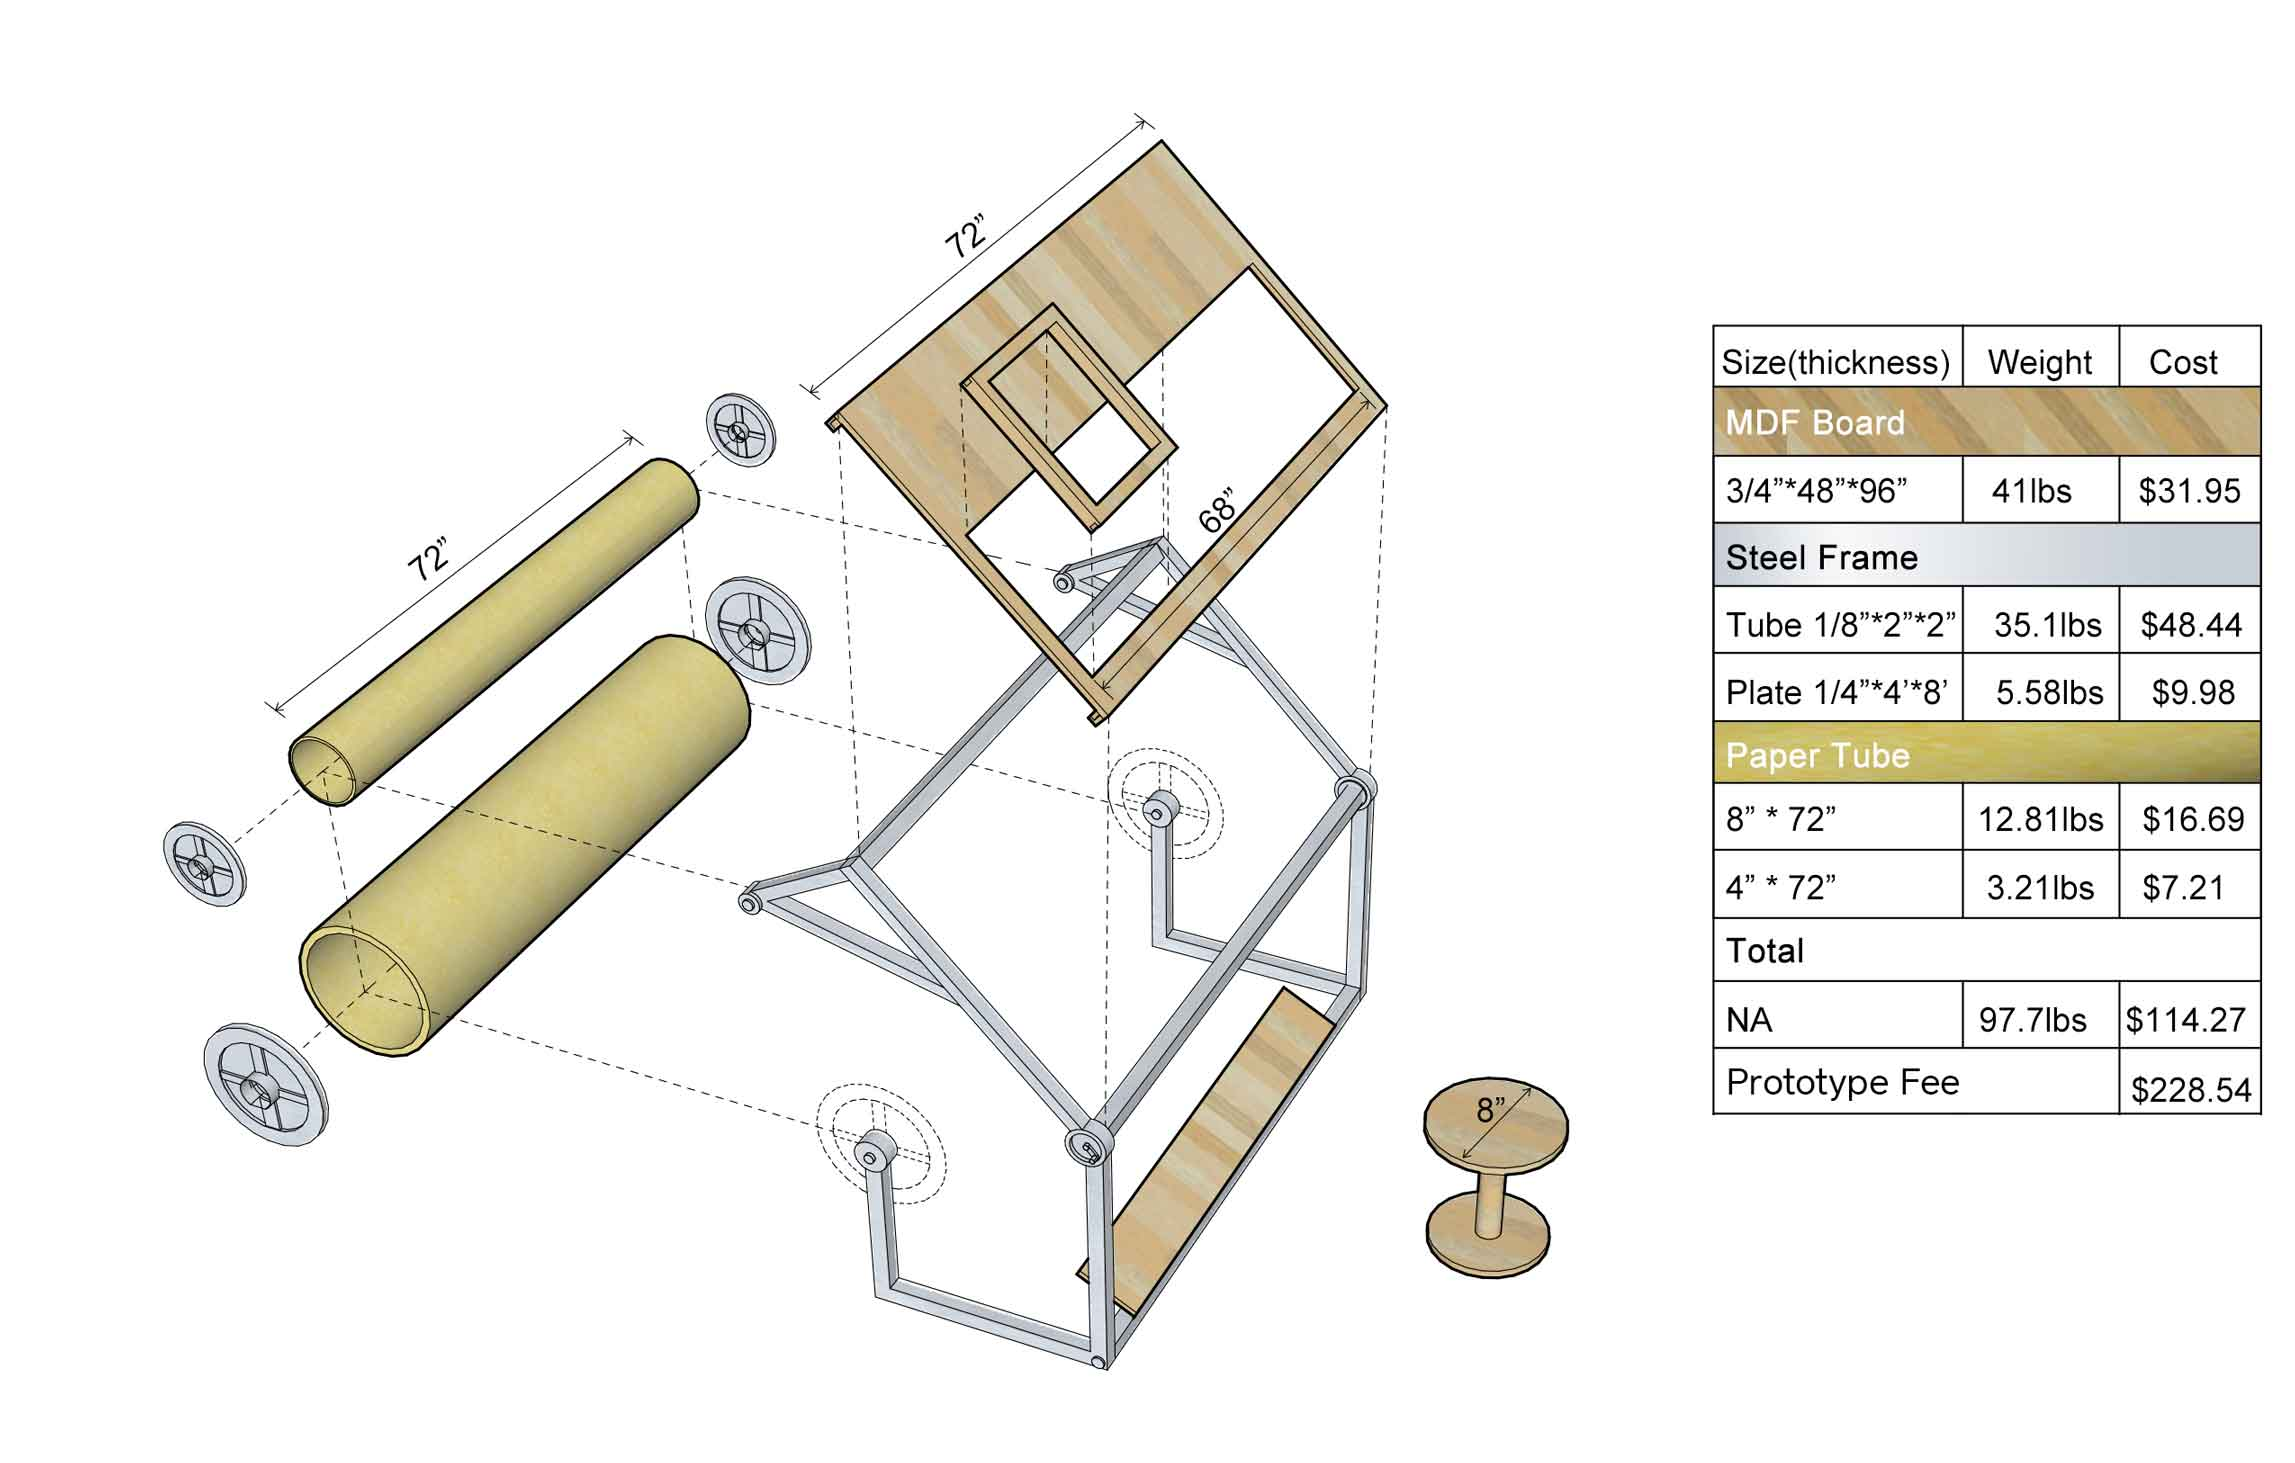 Exploded View & Bill of material